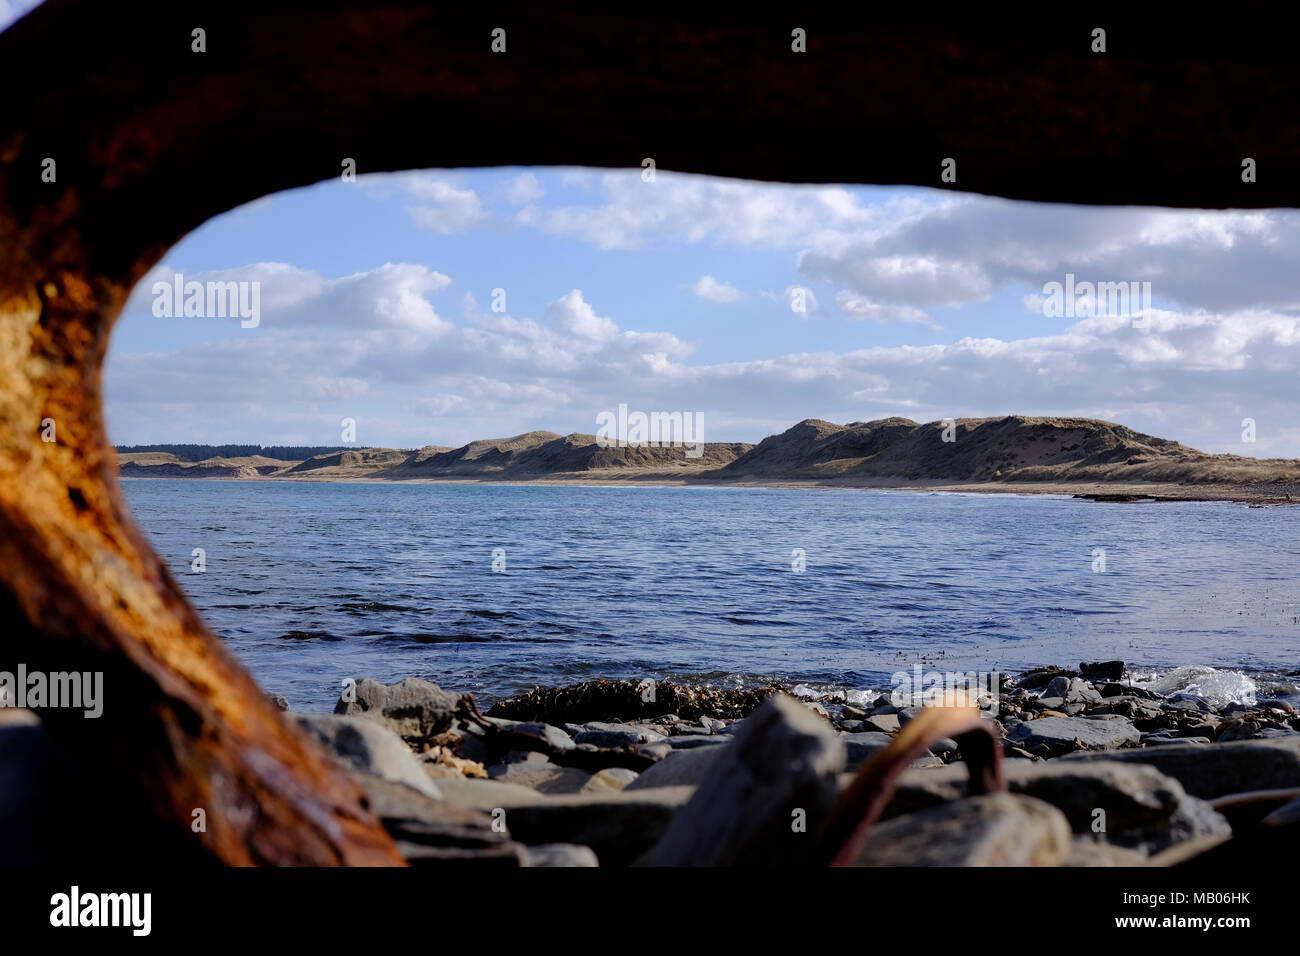 CAITHNESS, UK:  The North Coast 500 is a 516-mile (830 km) scenic route around the north coast of Scotland. Pictured Dunnet Beach, Caithness. - Stock Image